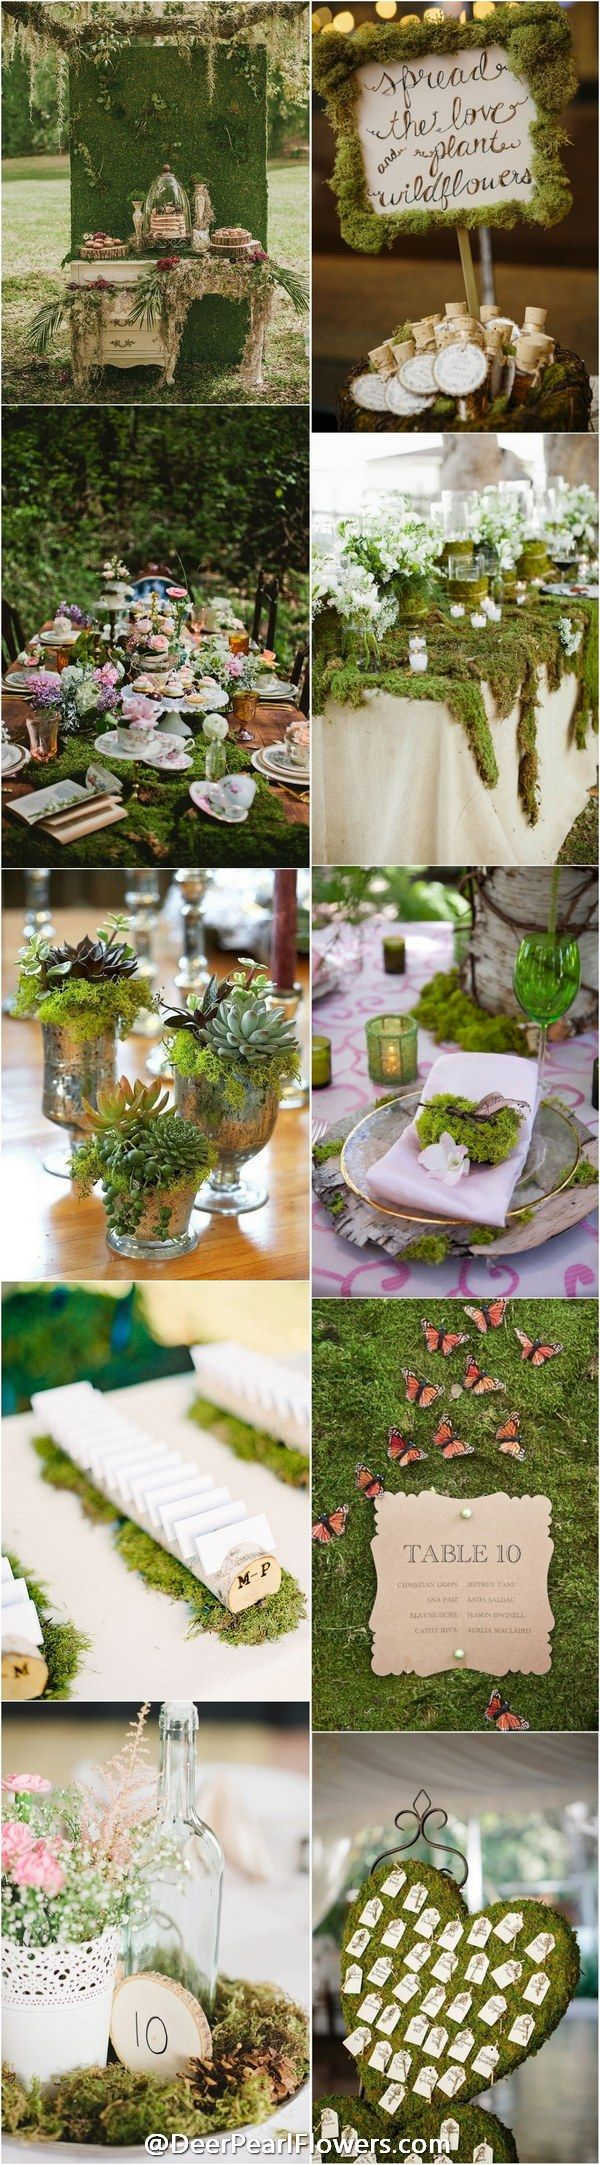 Don t forget that decorating the garden you must think about nature - 45 Rustic Moss Decor Ideas For A Nature Wedding